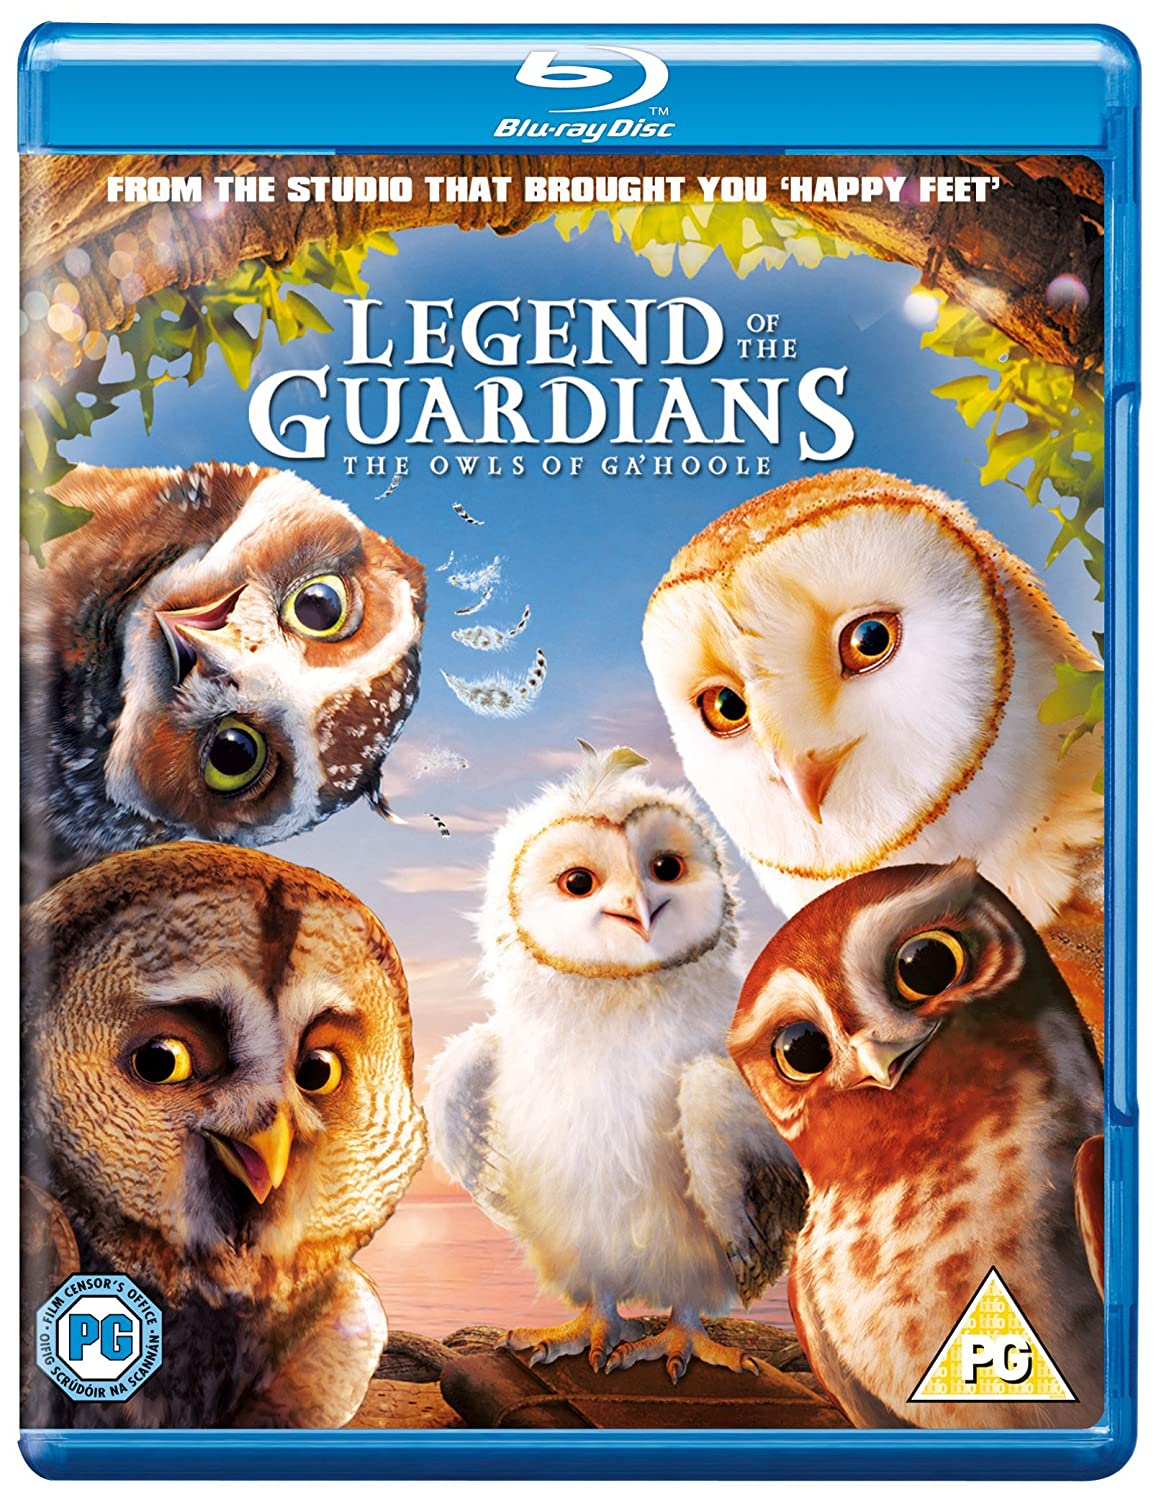 Amazon com: Legends of the Guardians [Blu-ray]: Hugo Weaving